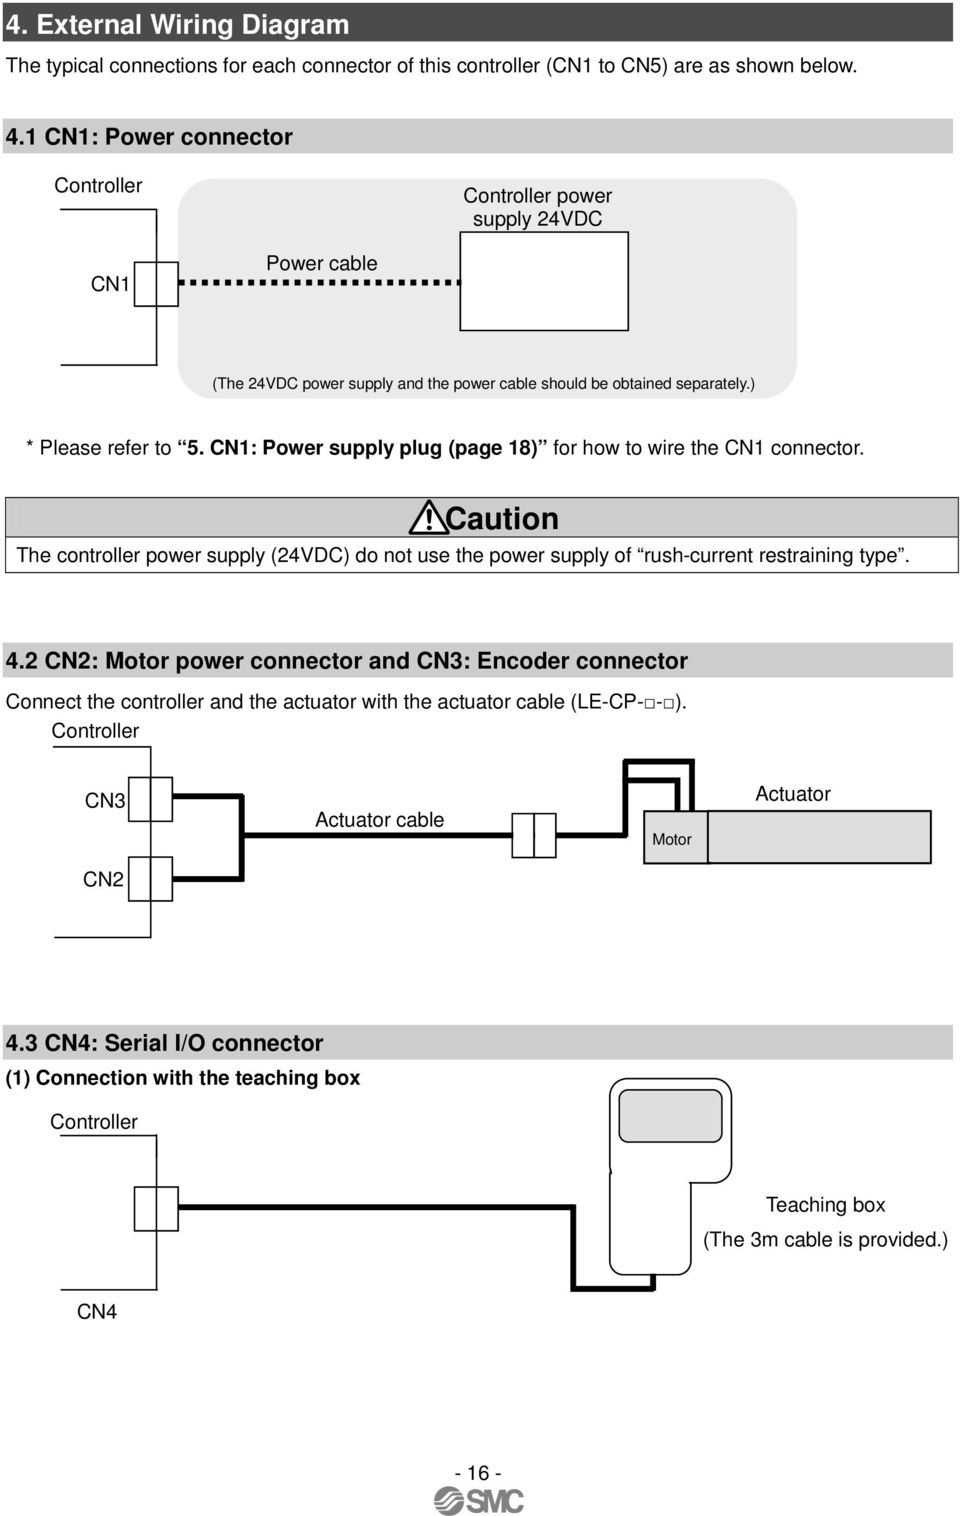 Step Motor Controller Servo 24vdc Pdf. Cn1 Power Supply Plug Page 18 For How To Wire The Connector. Wiring. 24vdc Motor Wire Diagram 3 At Scoala.co